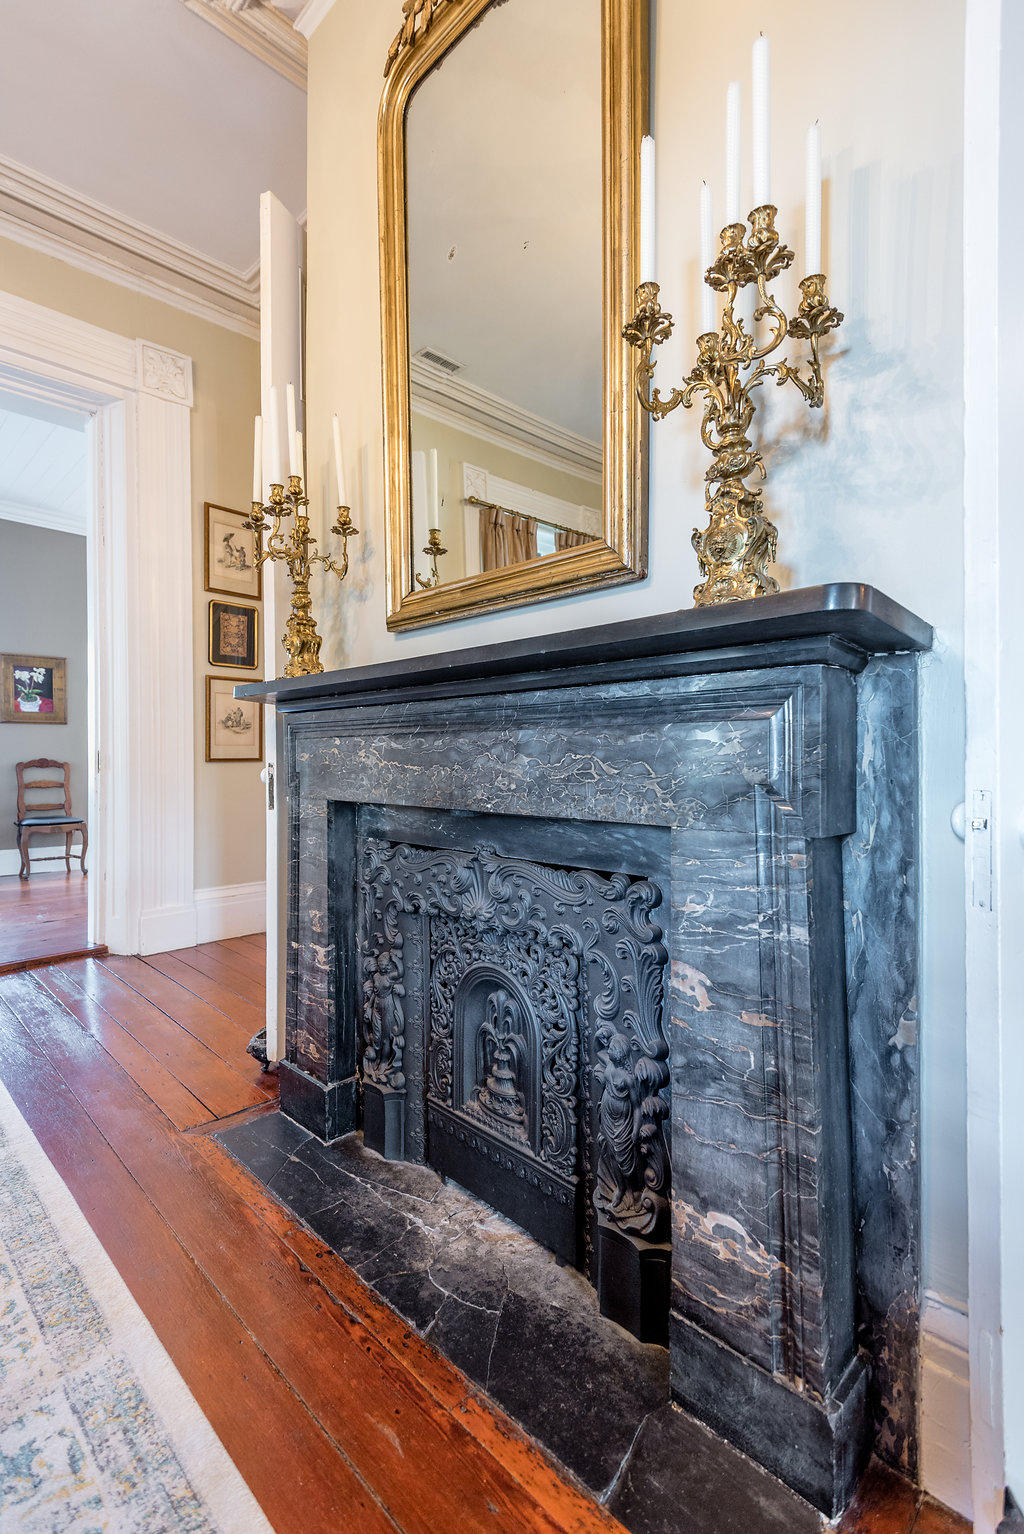 South of Broad Homes For Sale - 48&48 1/2 South Battery, Charleston, SC - 79